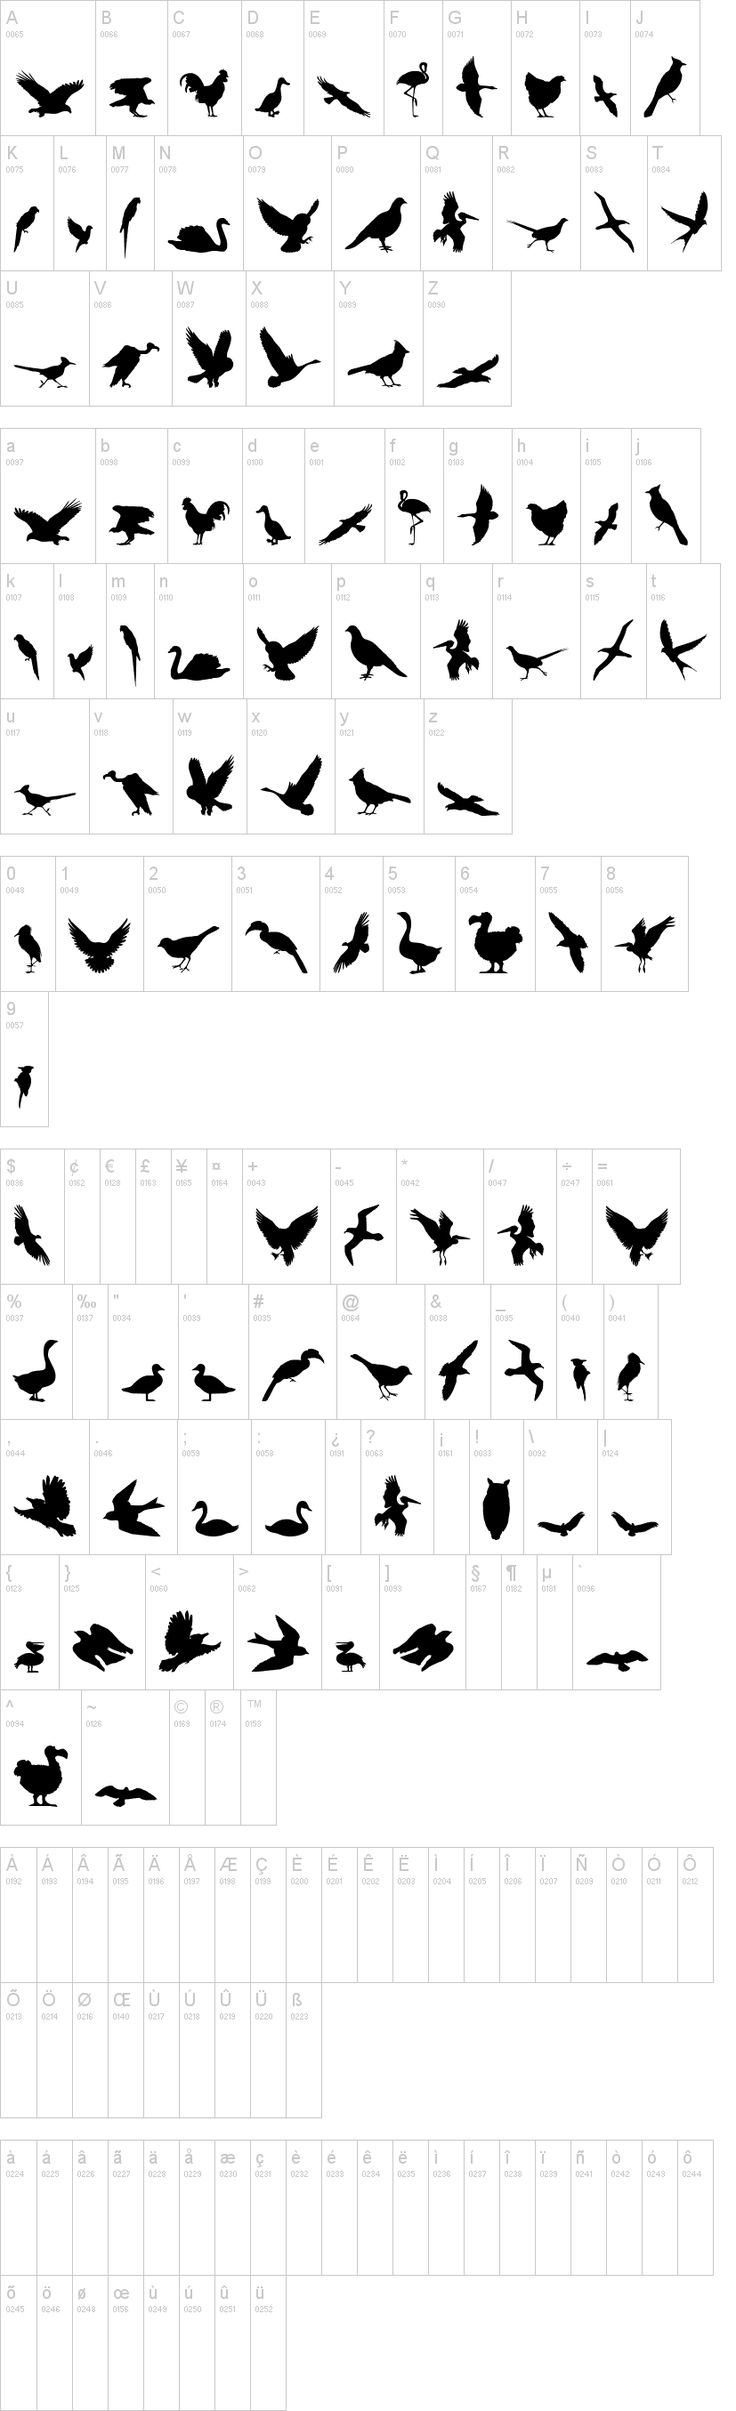 Birds of a Feather dingbat set by Iconian Fonts, download via dafont.com is free for personal use.